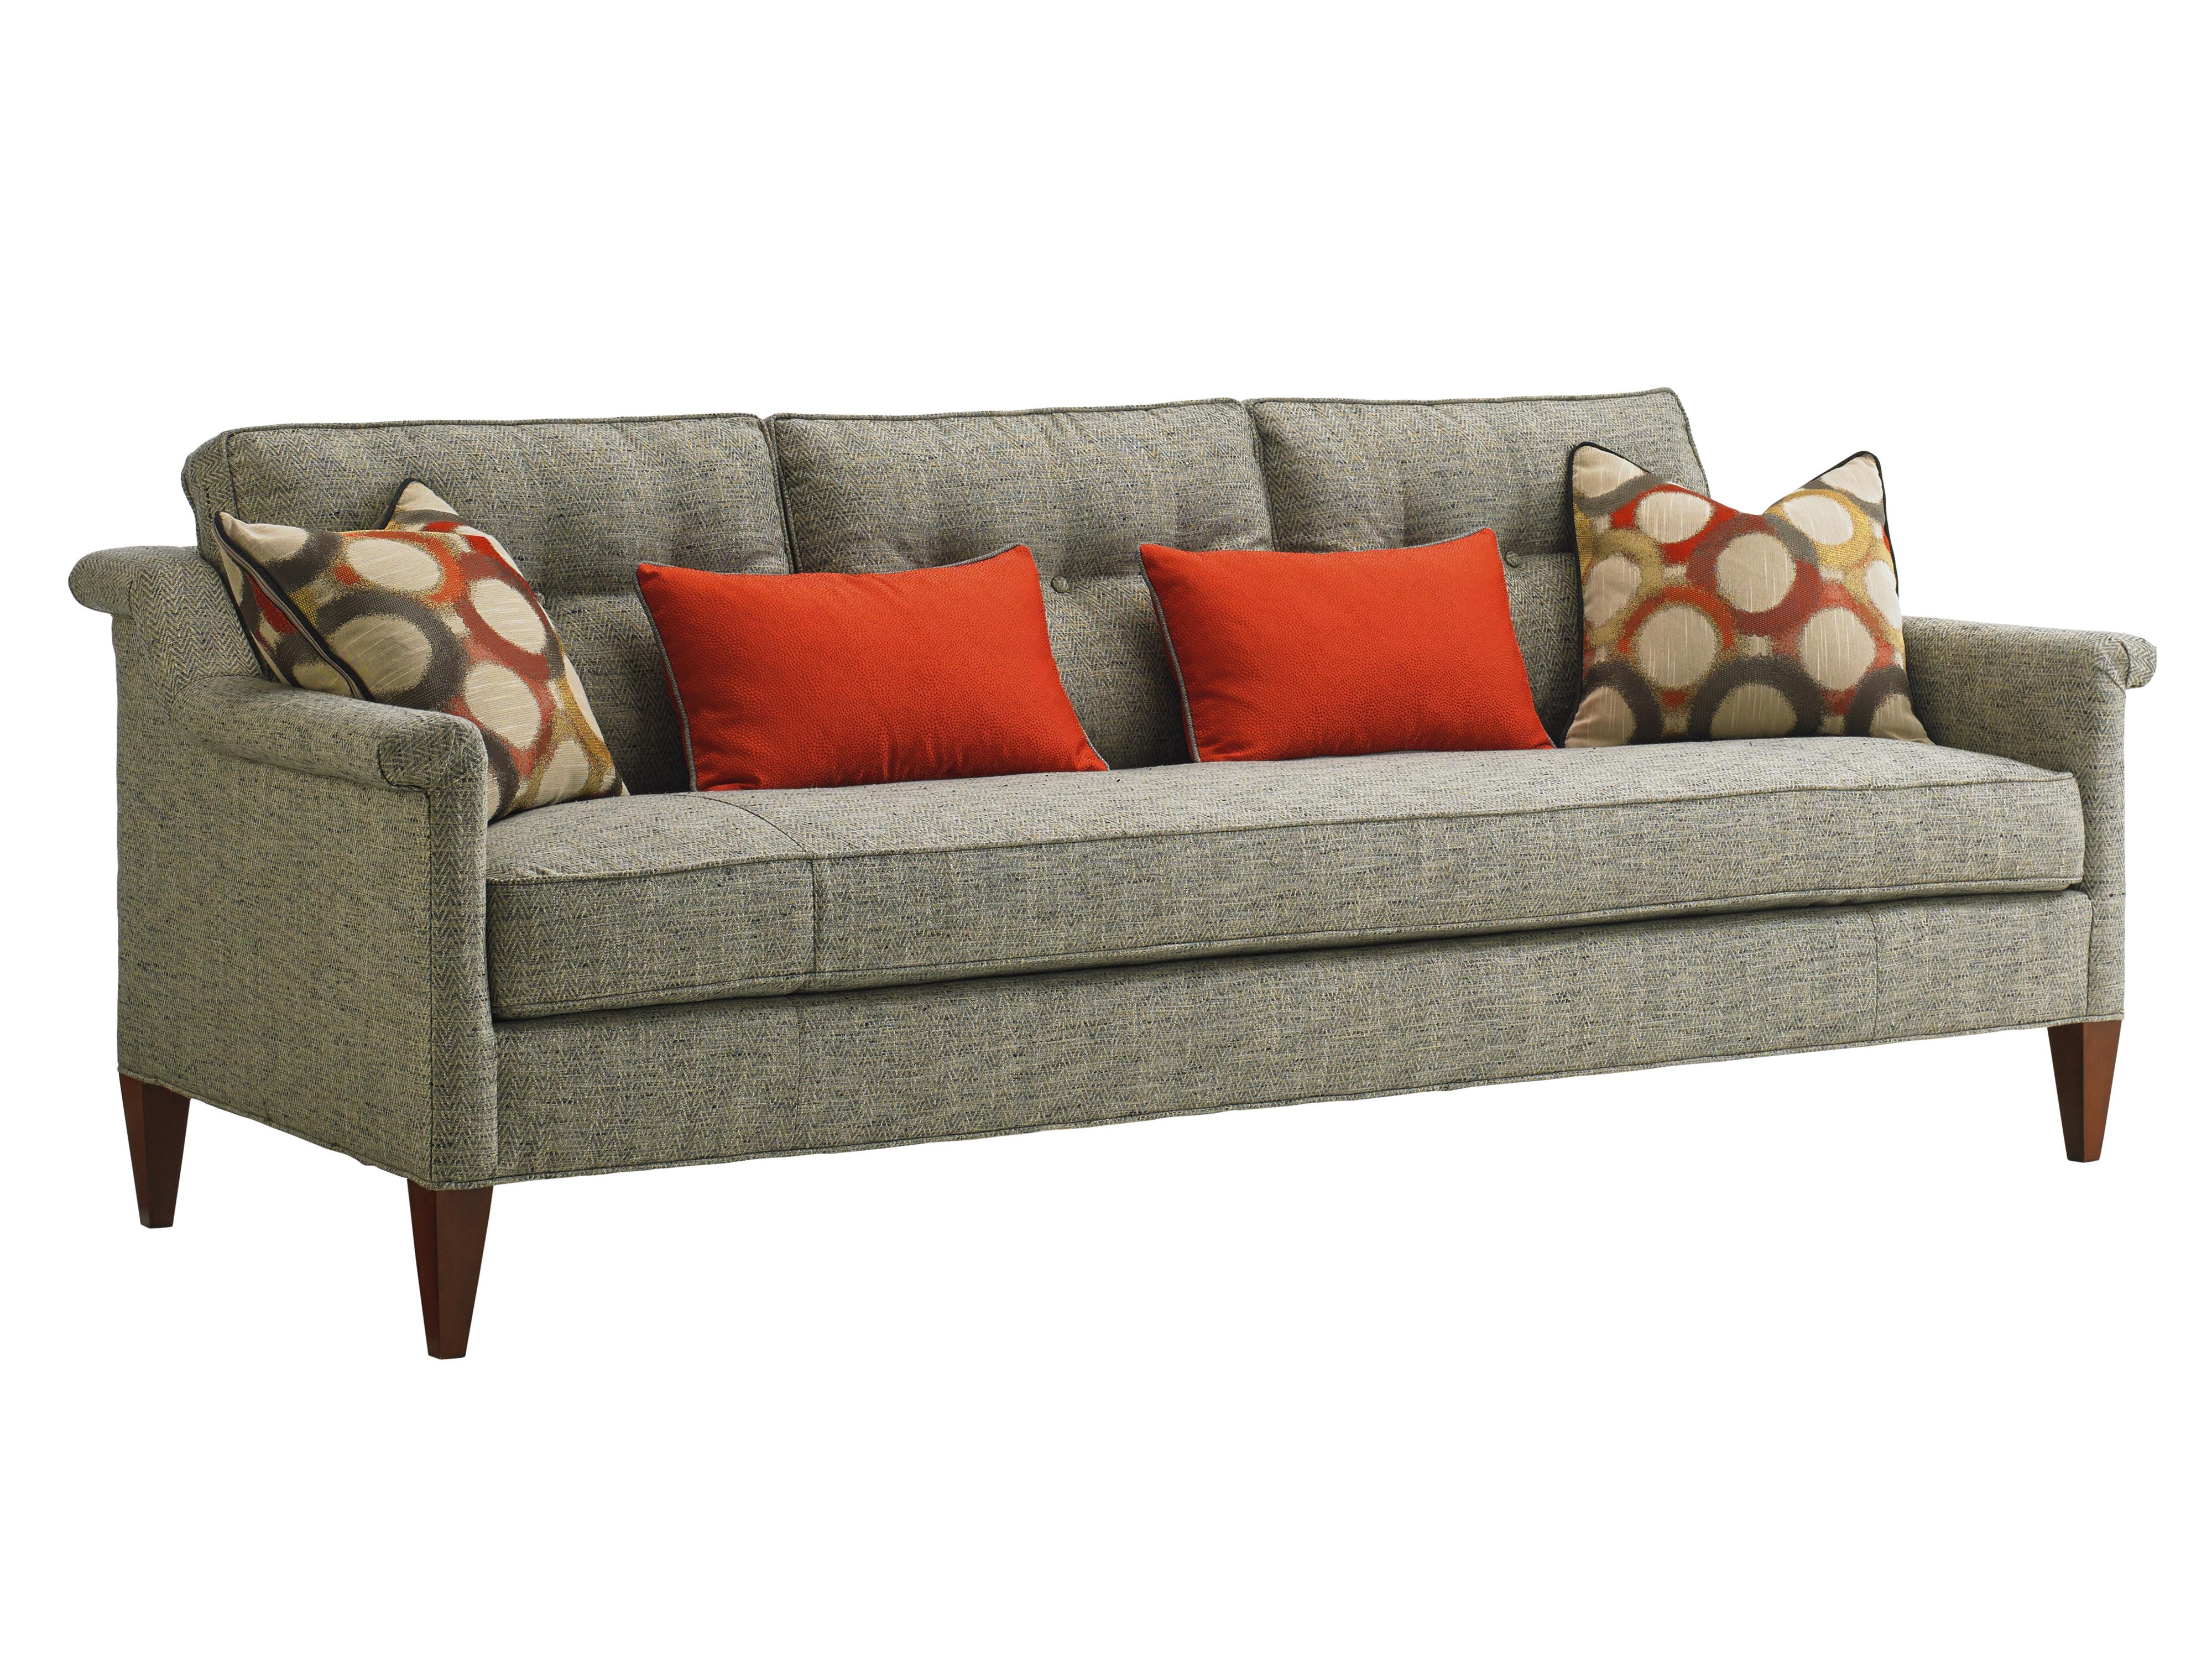 Lexington Take Five Whitehall Tufted Sofa With Modern Rolled Arms And Bench Seat Belfort